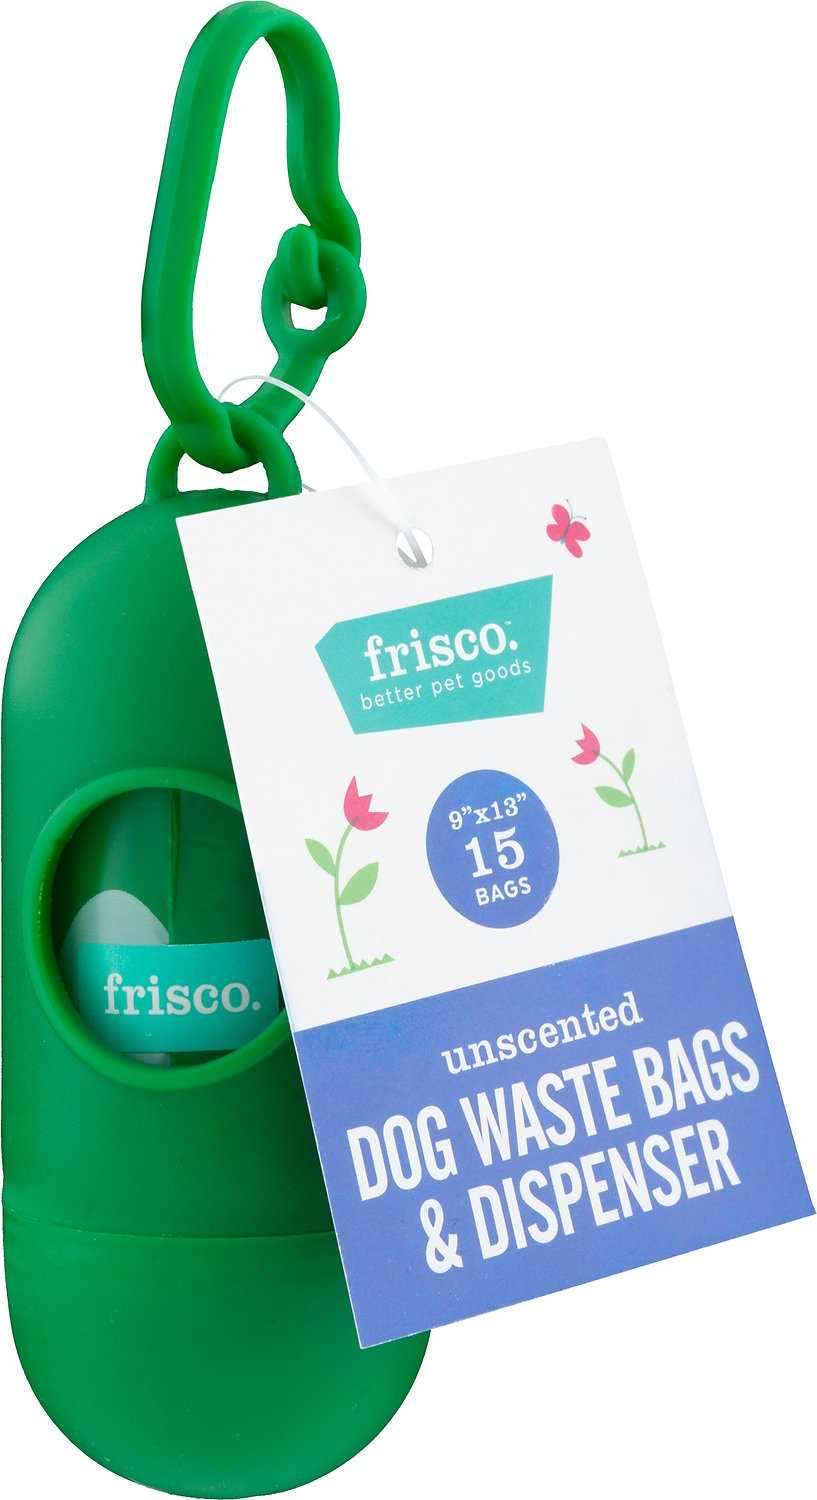 Frisco Dog Bags Dispenser Unscented 15 Count